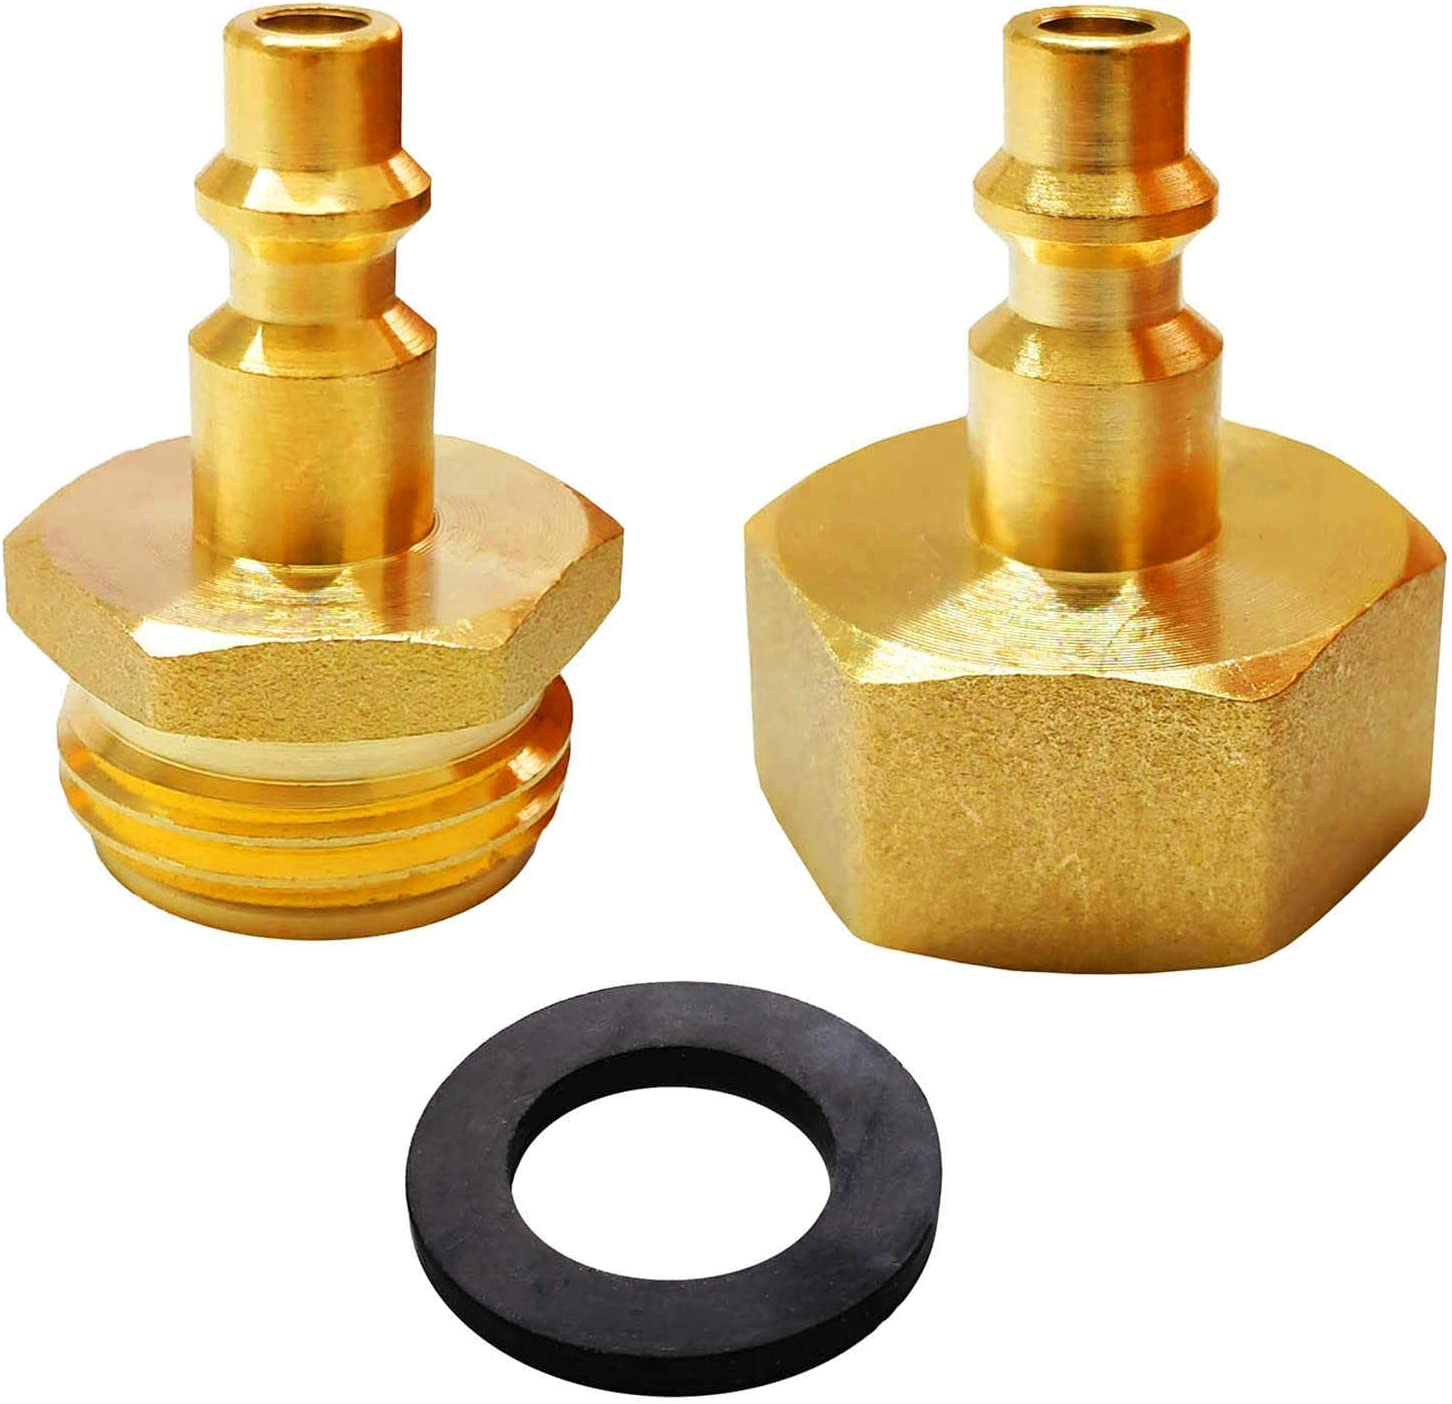 "Lomodo 2 Pieces Brass Blow Out Adapter for Winterize Sprinkler Systems, Air Compressor 1/4"" Quick Connect Plug to Garden Hose Faucet 3/4"" Thread for Removing Water from Water Lines"